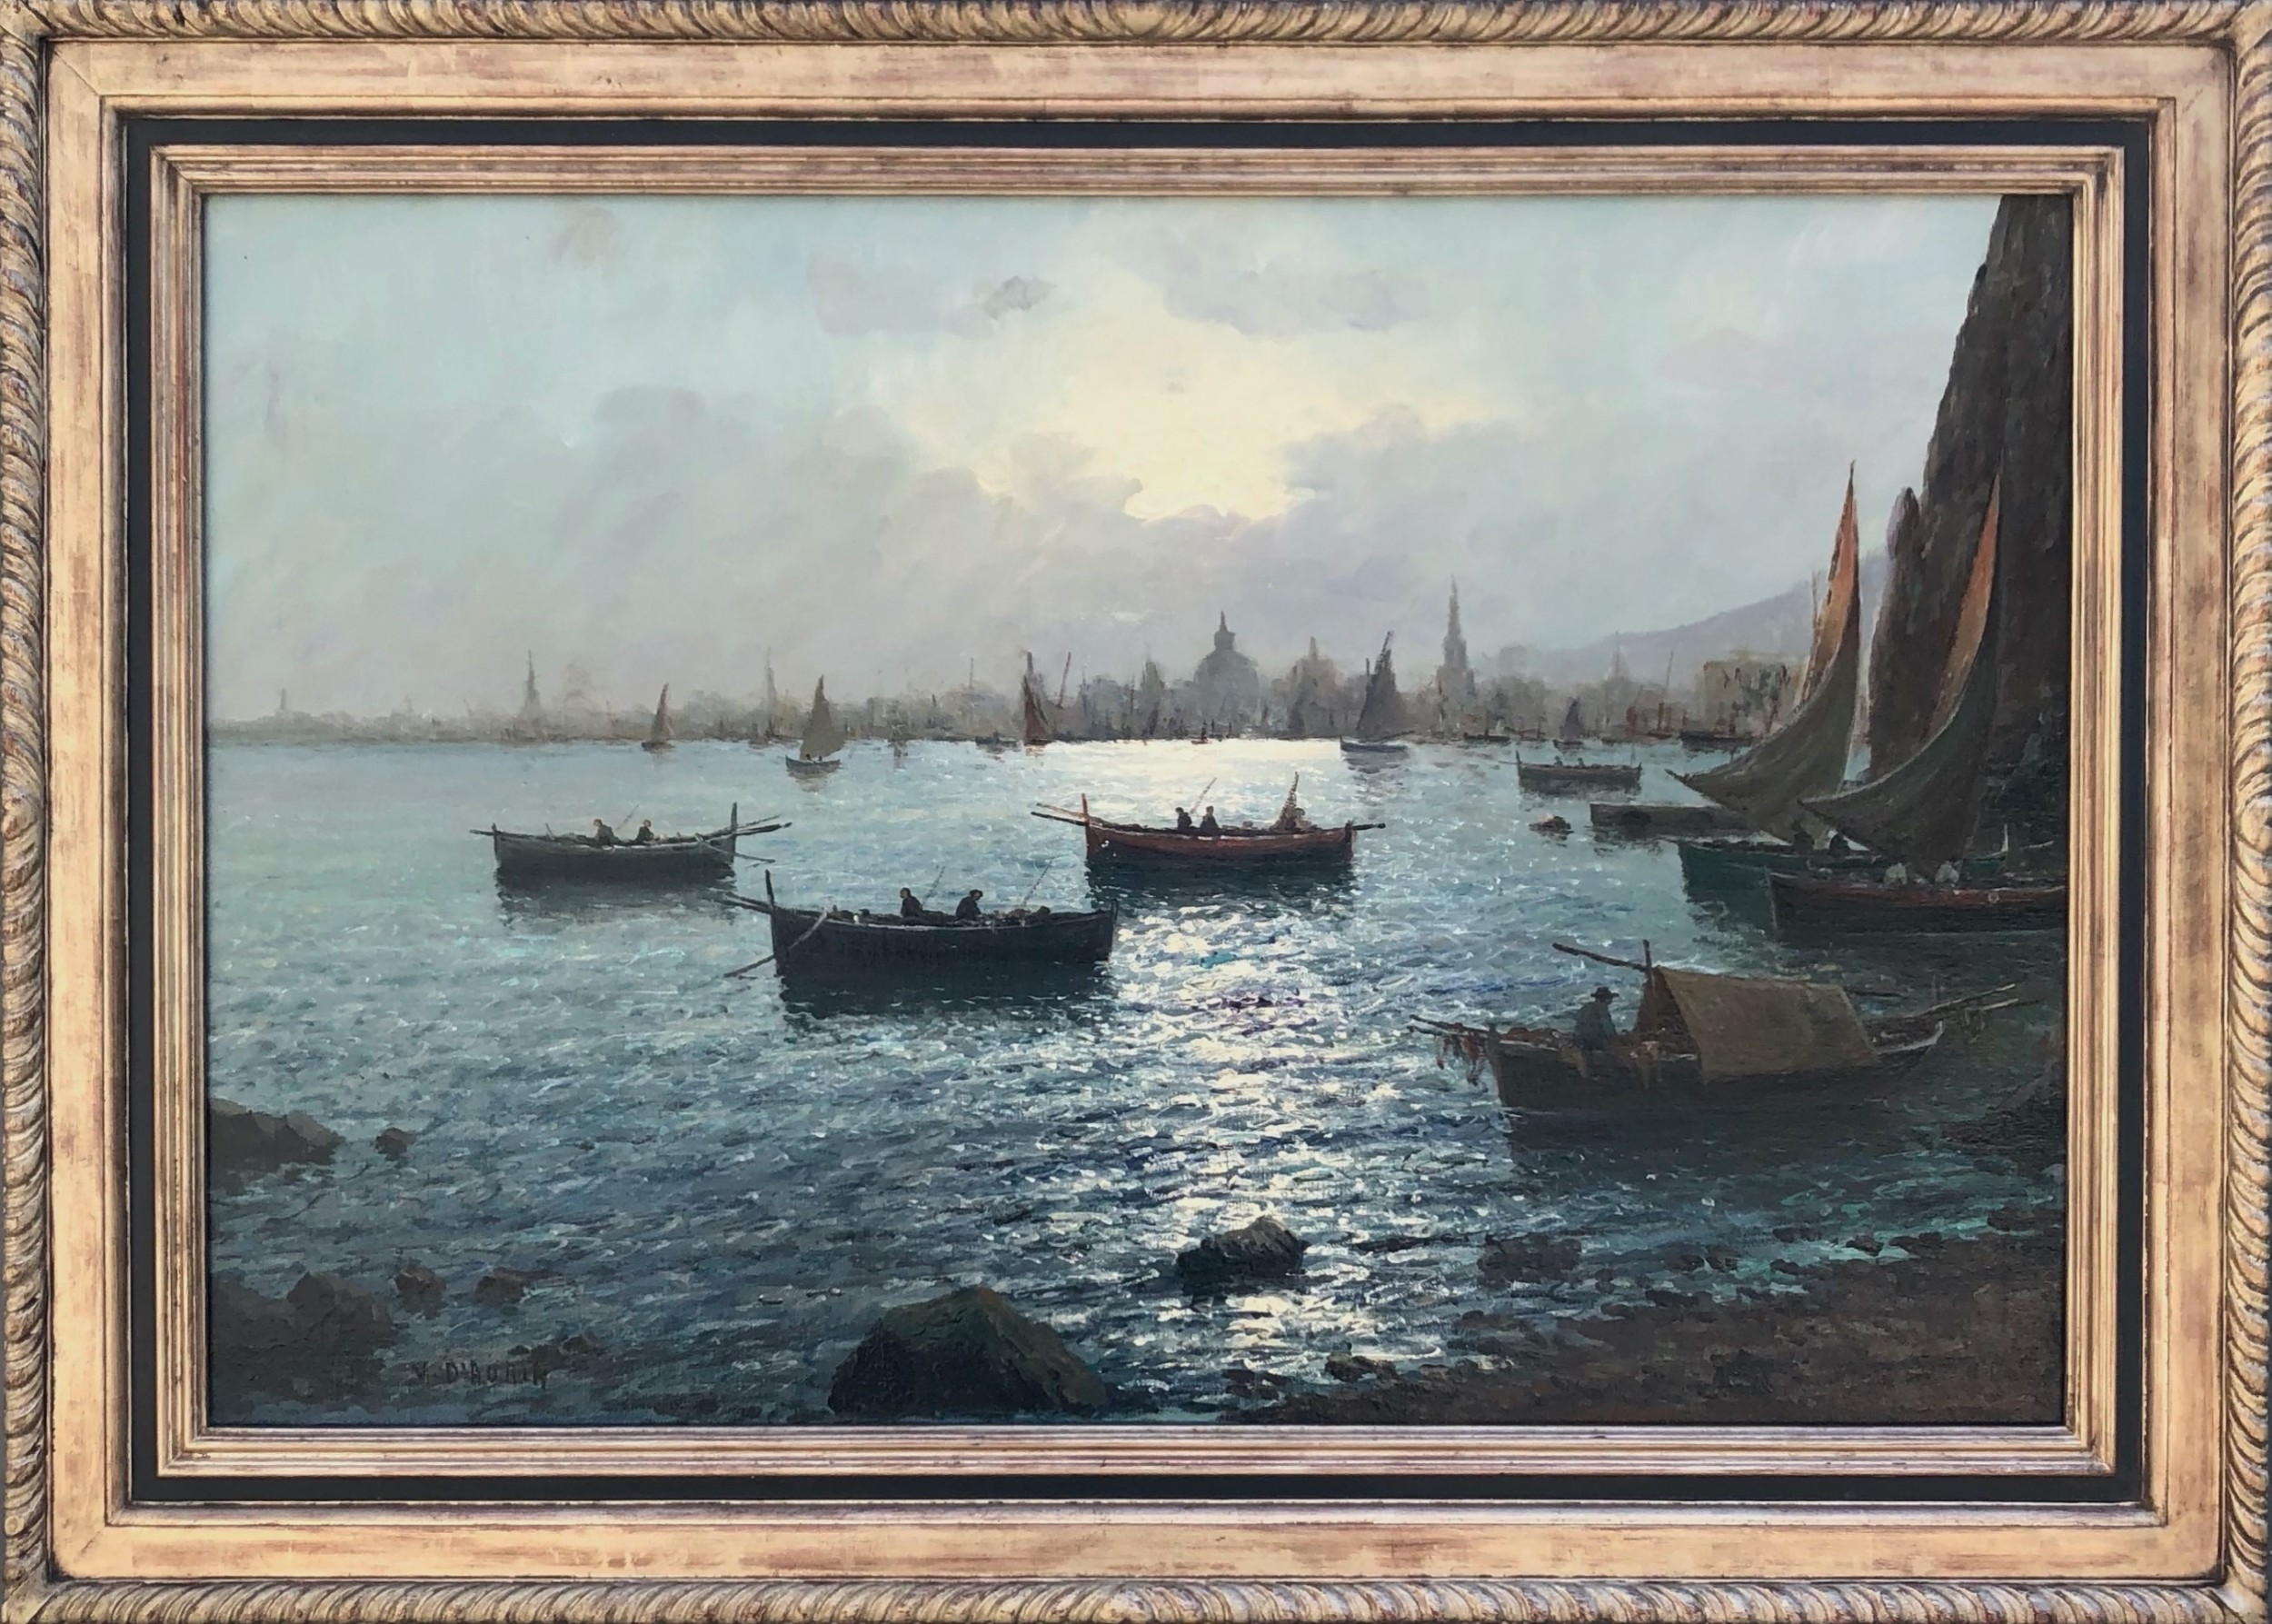 oil painting seascapeharbour scene with city in background italian early 20th1900